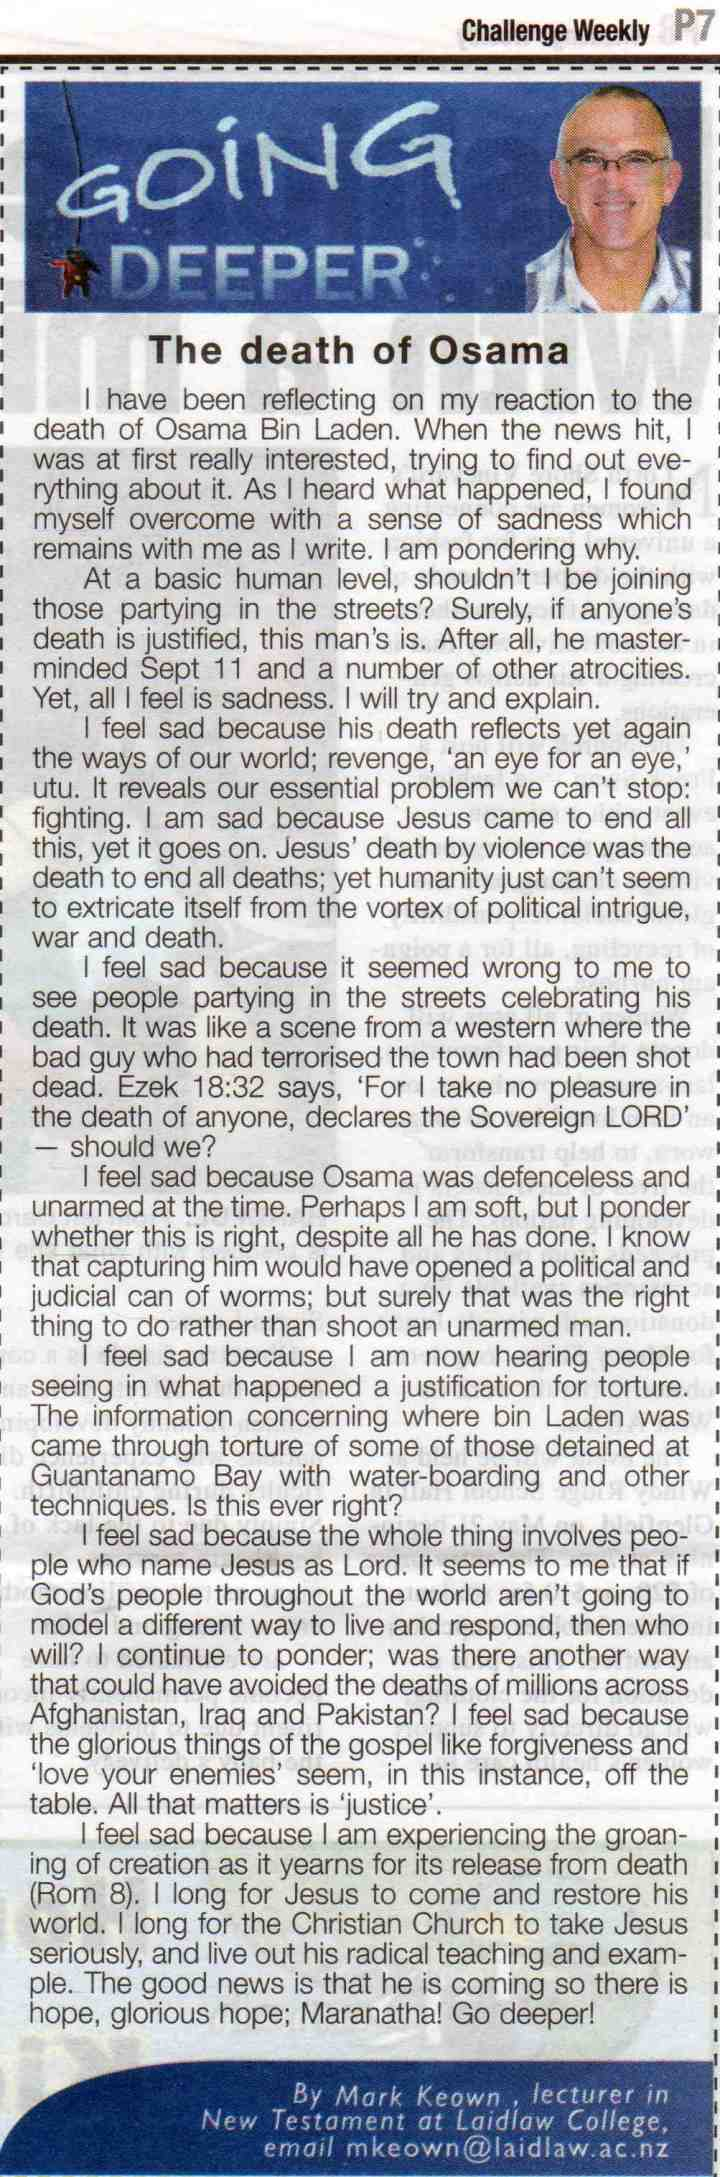 The death of Osama